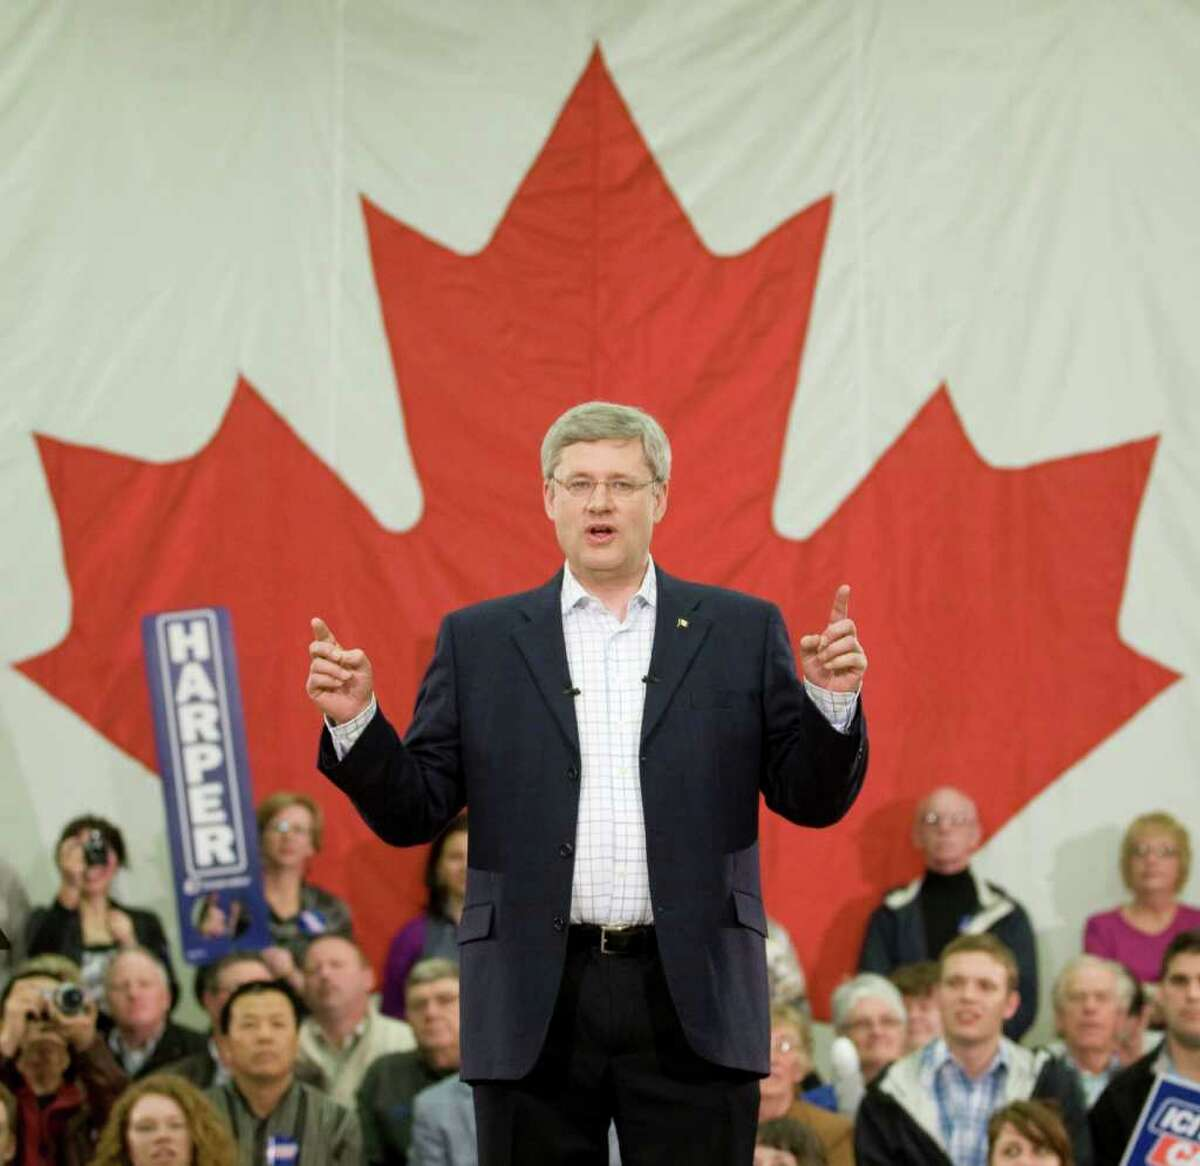 Prime Minister Stephen Harper speaks during a campaign rally in Stratford, Prince Edward Island, Canada near Charlottetown on Sunday May 1, 2011. Unexpected gains for the New Democratic Party have upended previous soundings that predicted the Conservatives would get enough votes to form a minority government, perhaps even a majority one. Now a new scenario has emerged in which the New Democrats and the Liberals together win enough seats to eventually form a coalition. (AP Photo/The Canadian Press, Adrian Wyld)